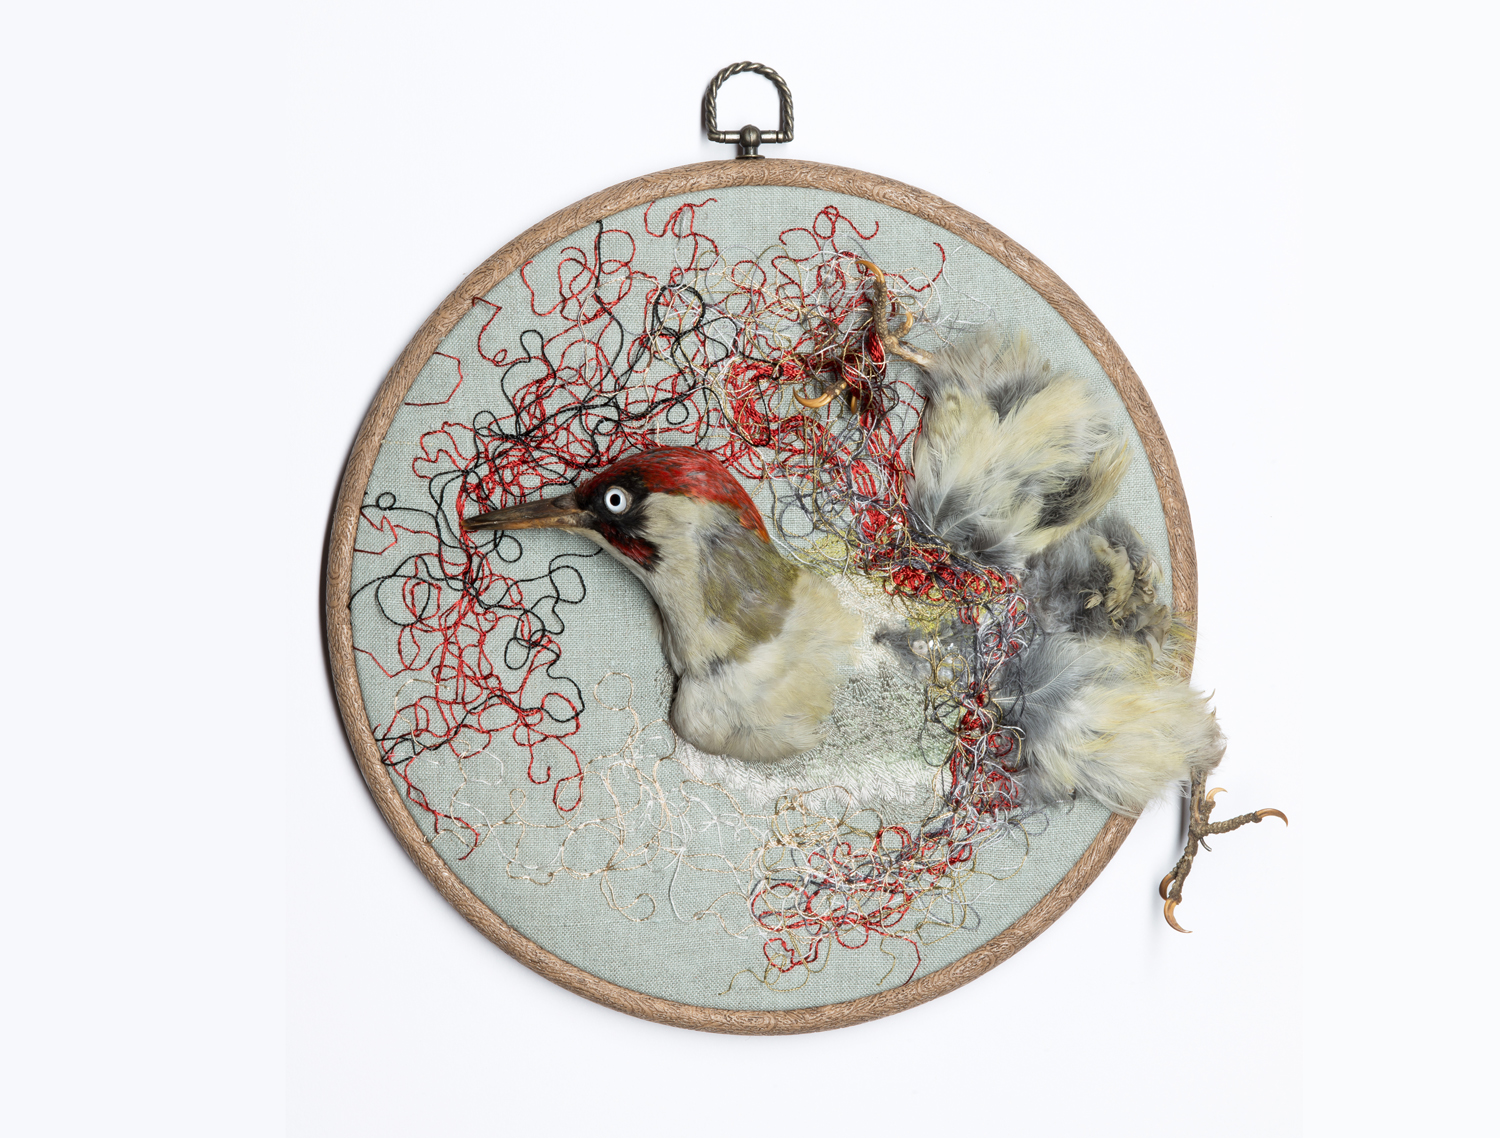 'Unfurl' (2013) Hand embroidery and vintage taxidermy on linen, readymade embroidery hoop, 28cm diameter.